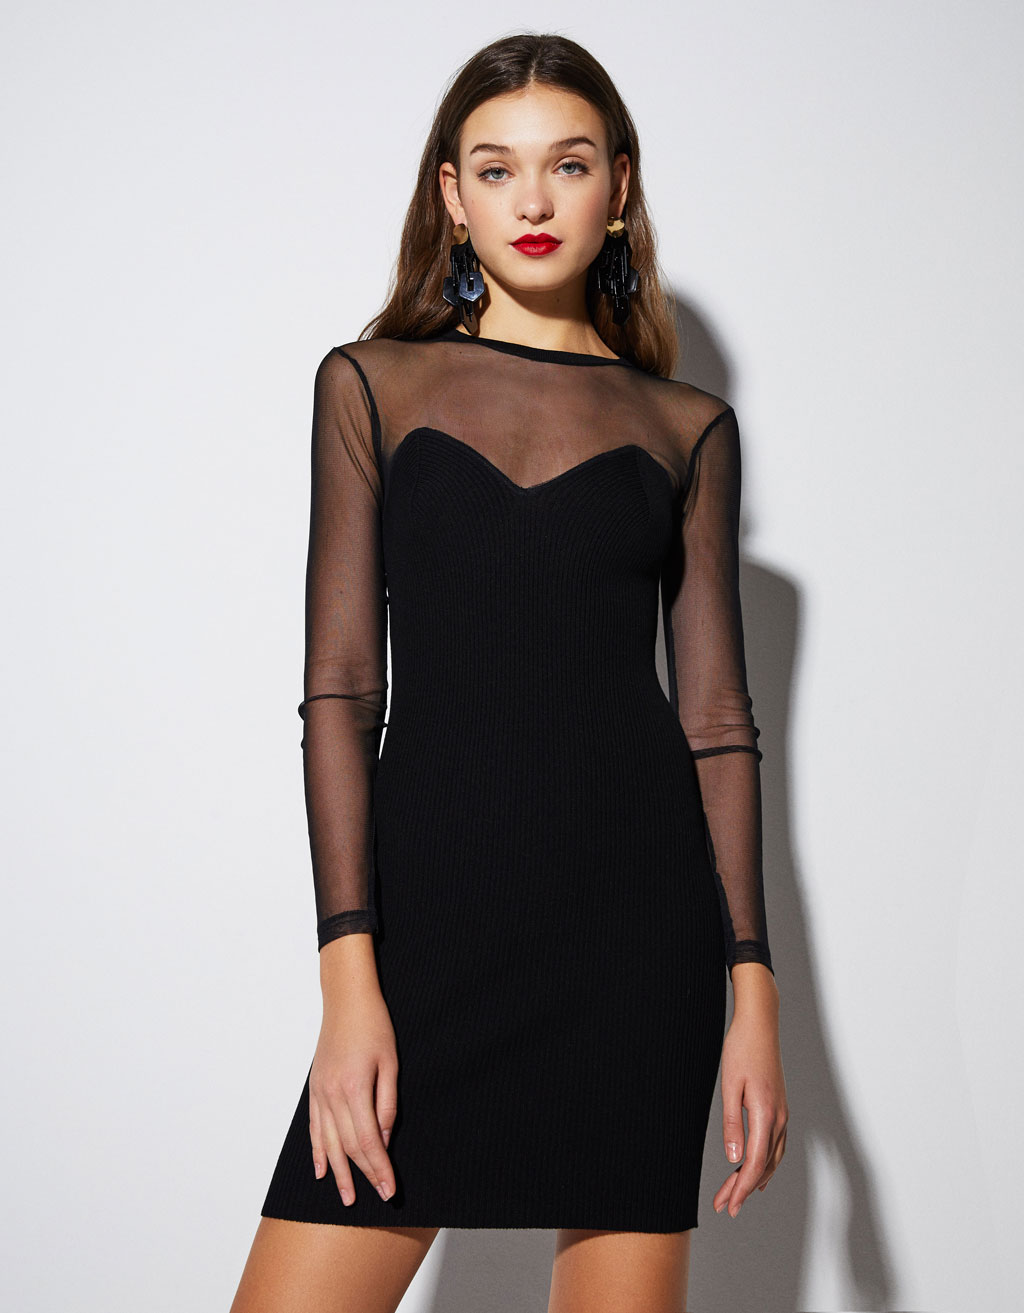 Robe Avec Parties Transparentes by Bershka